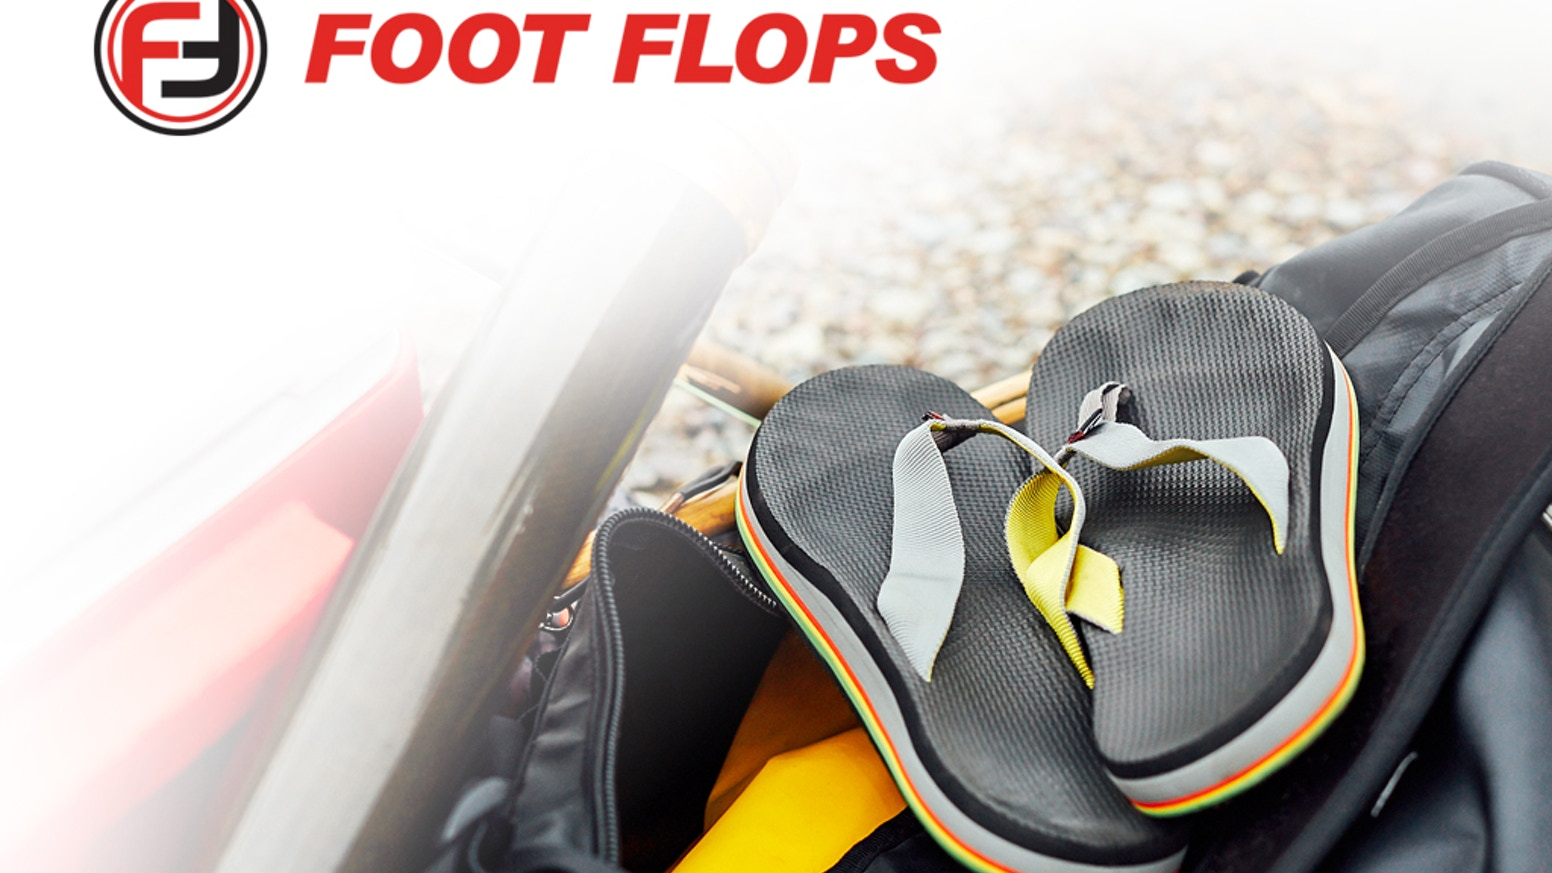 Foot Flops: Heat moldable flip flops formed to fit your feet